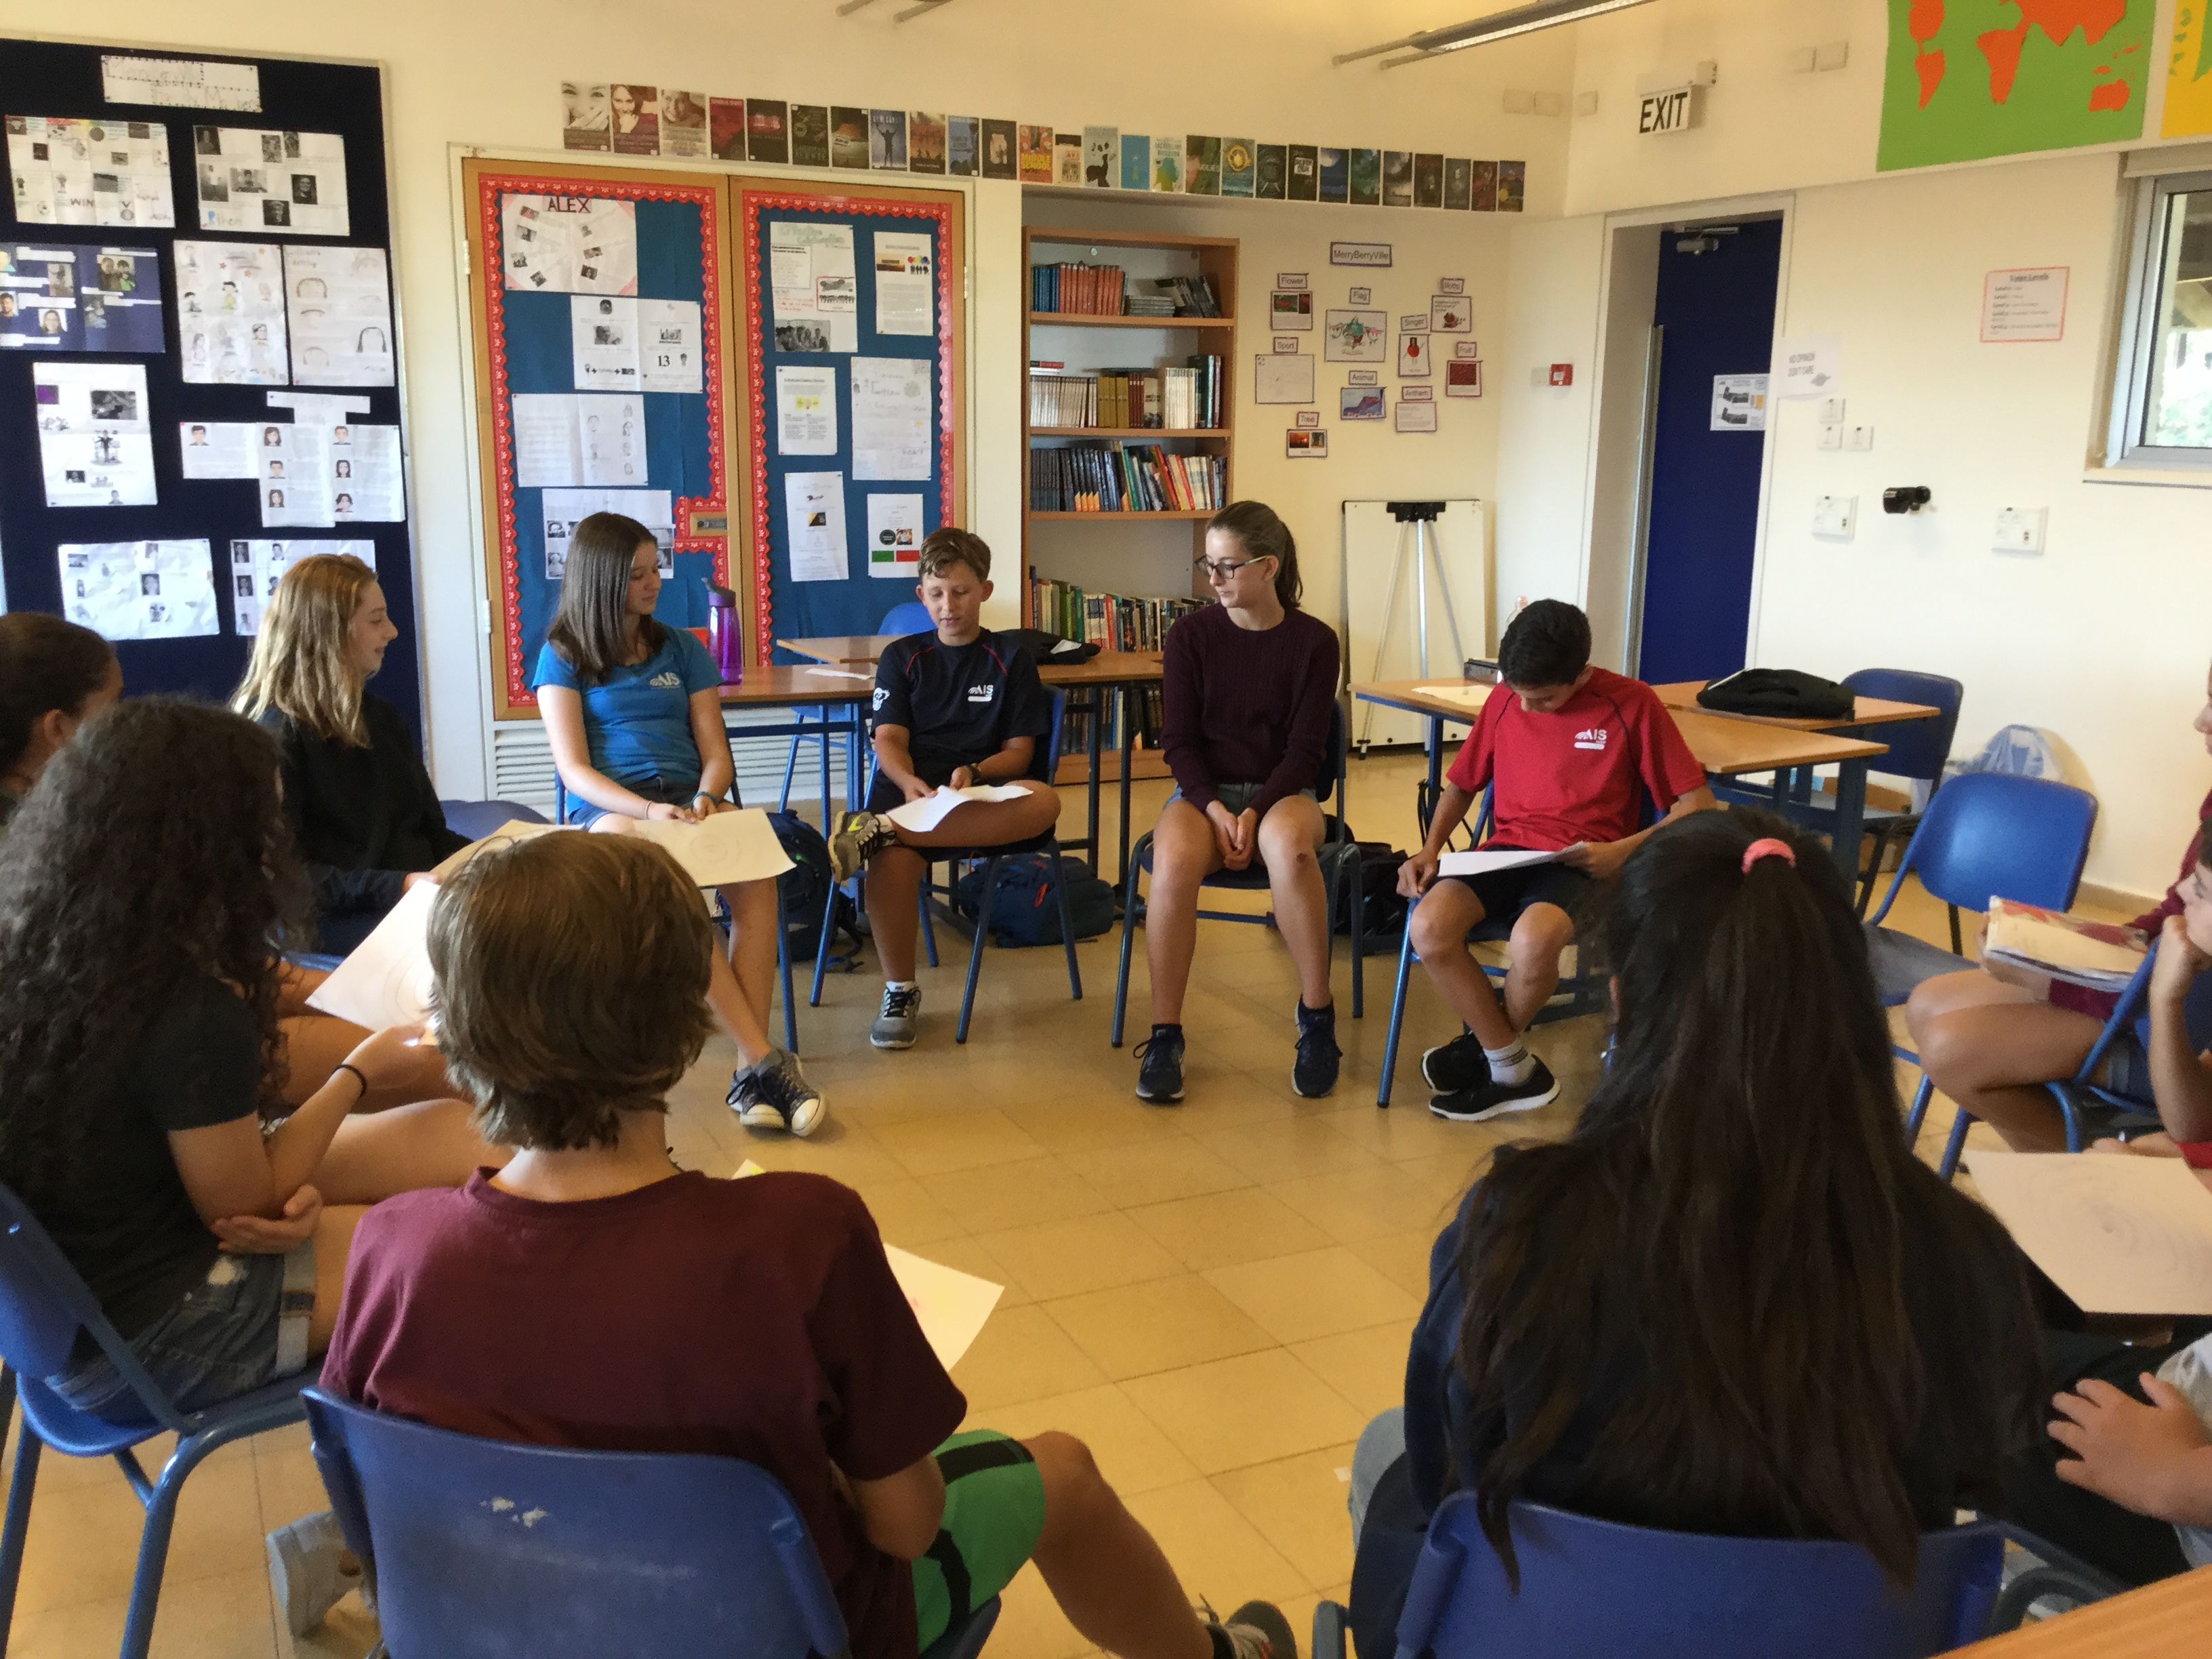 MS Exploratory: Discussion, Debates, and Topics of Interest